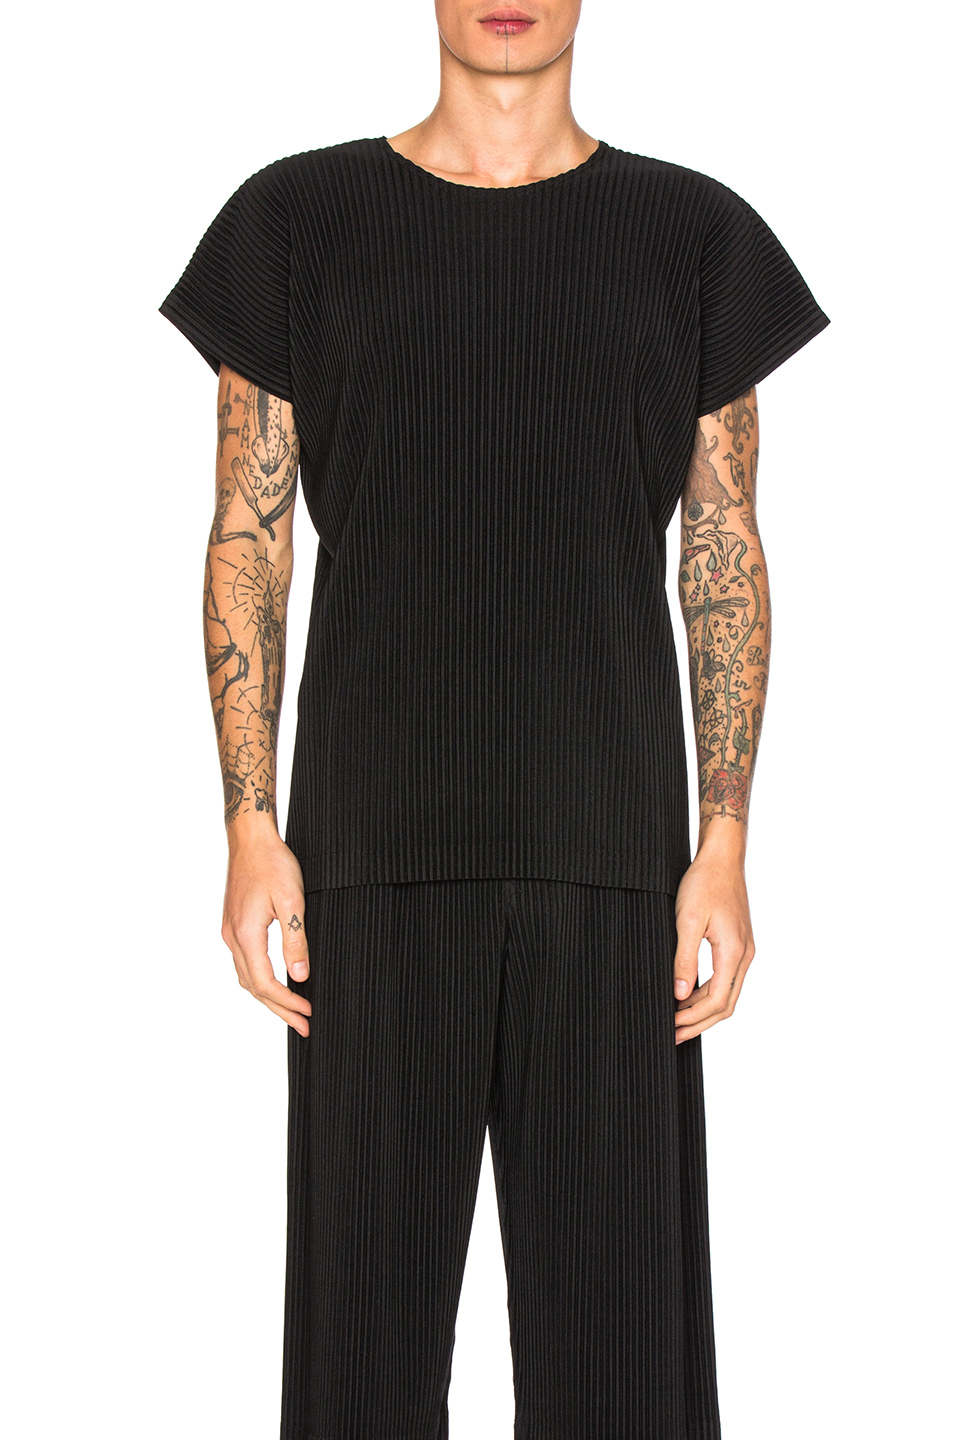 Issey Miyake Homme Plisse Tunic in Black